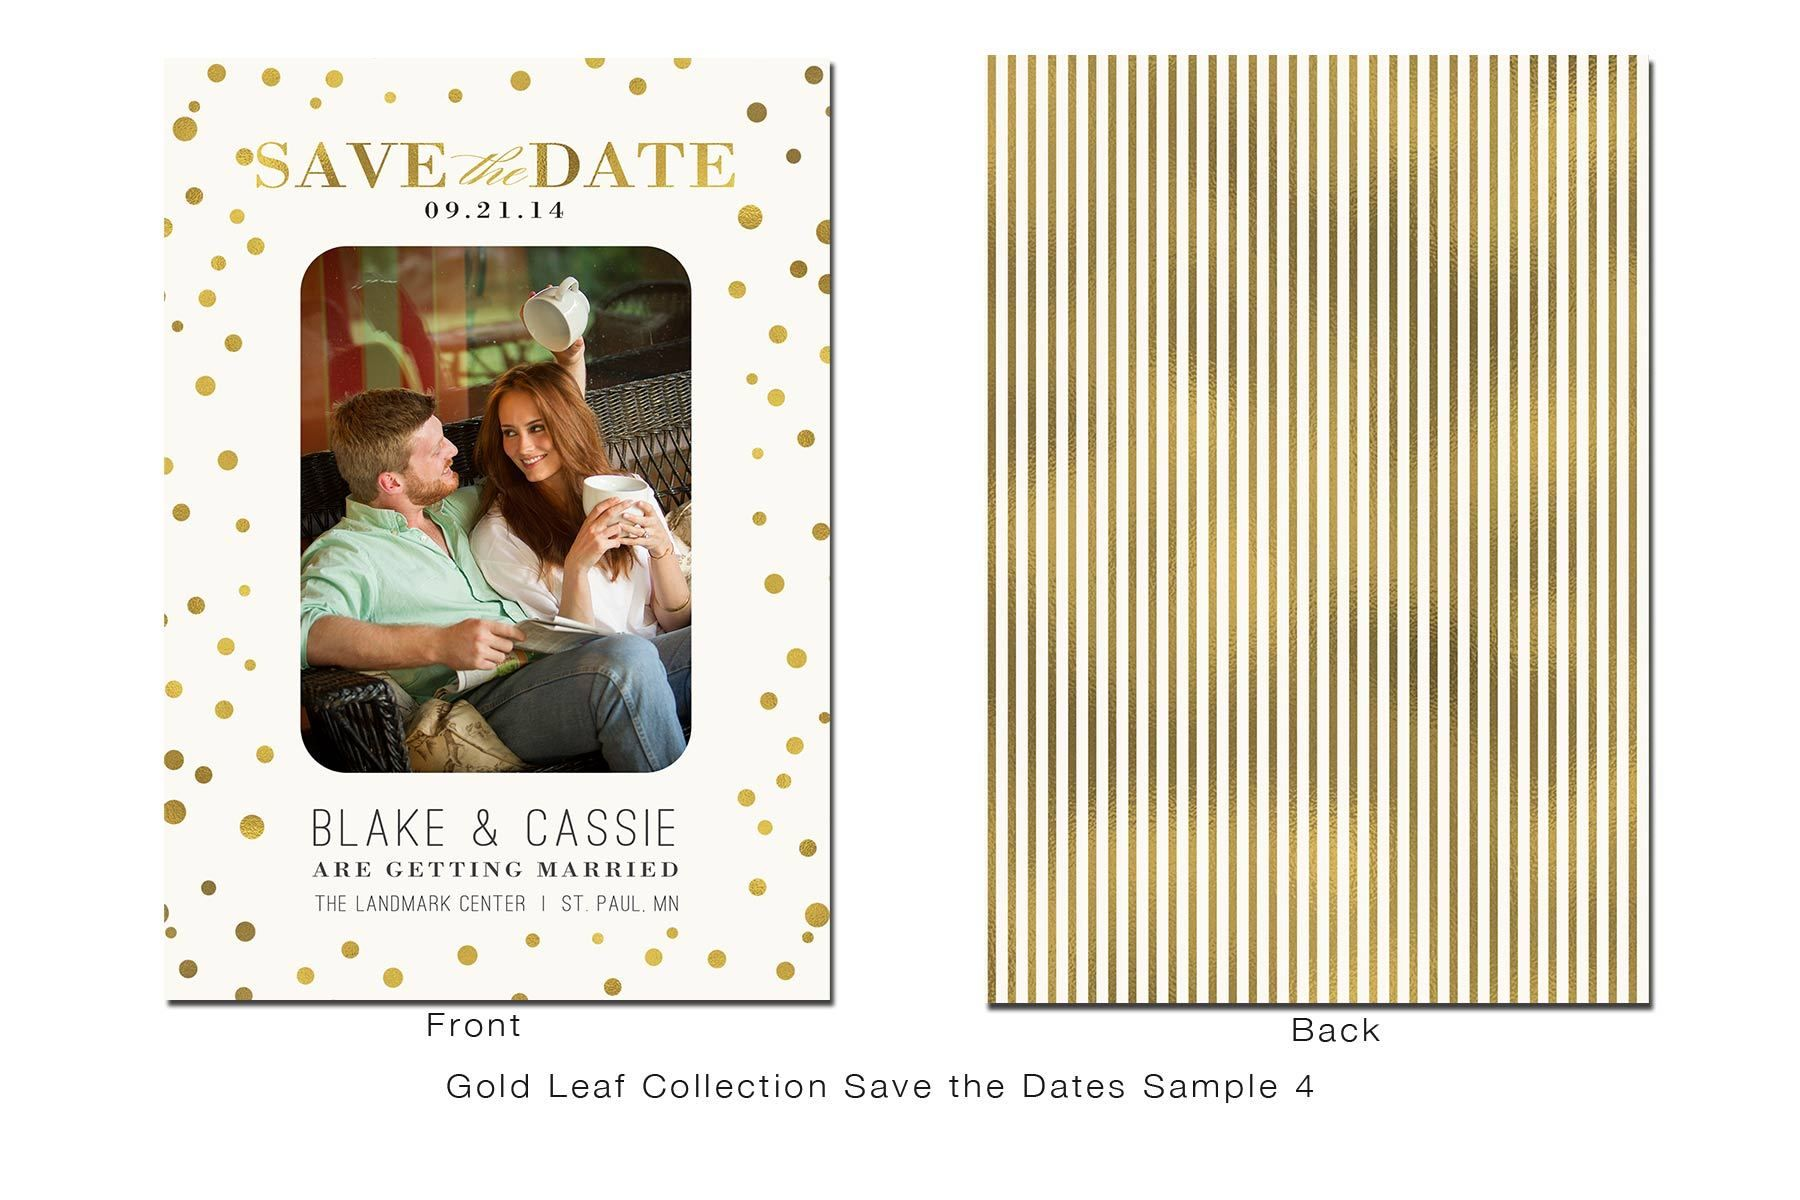 1gold_leaf_save_the_dates_sample_4.jpg